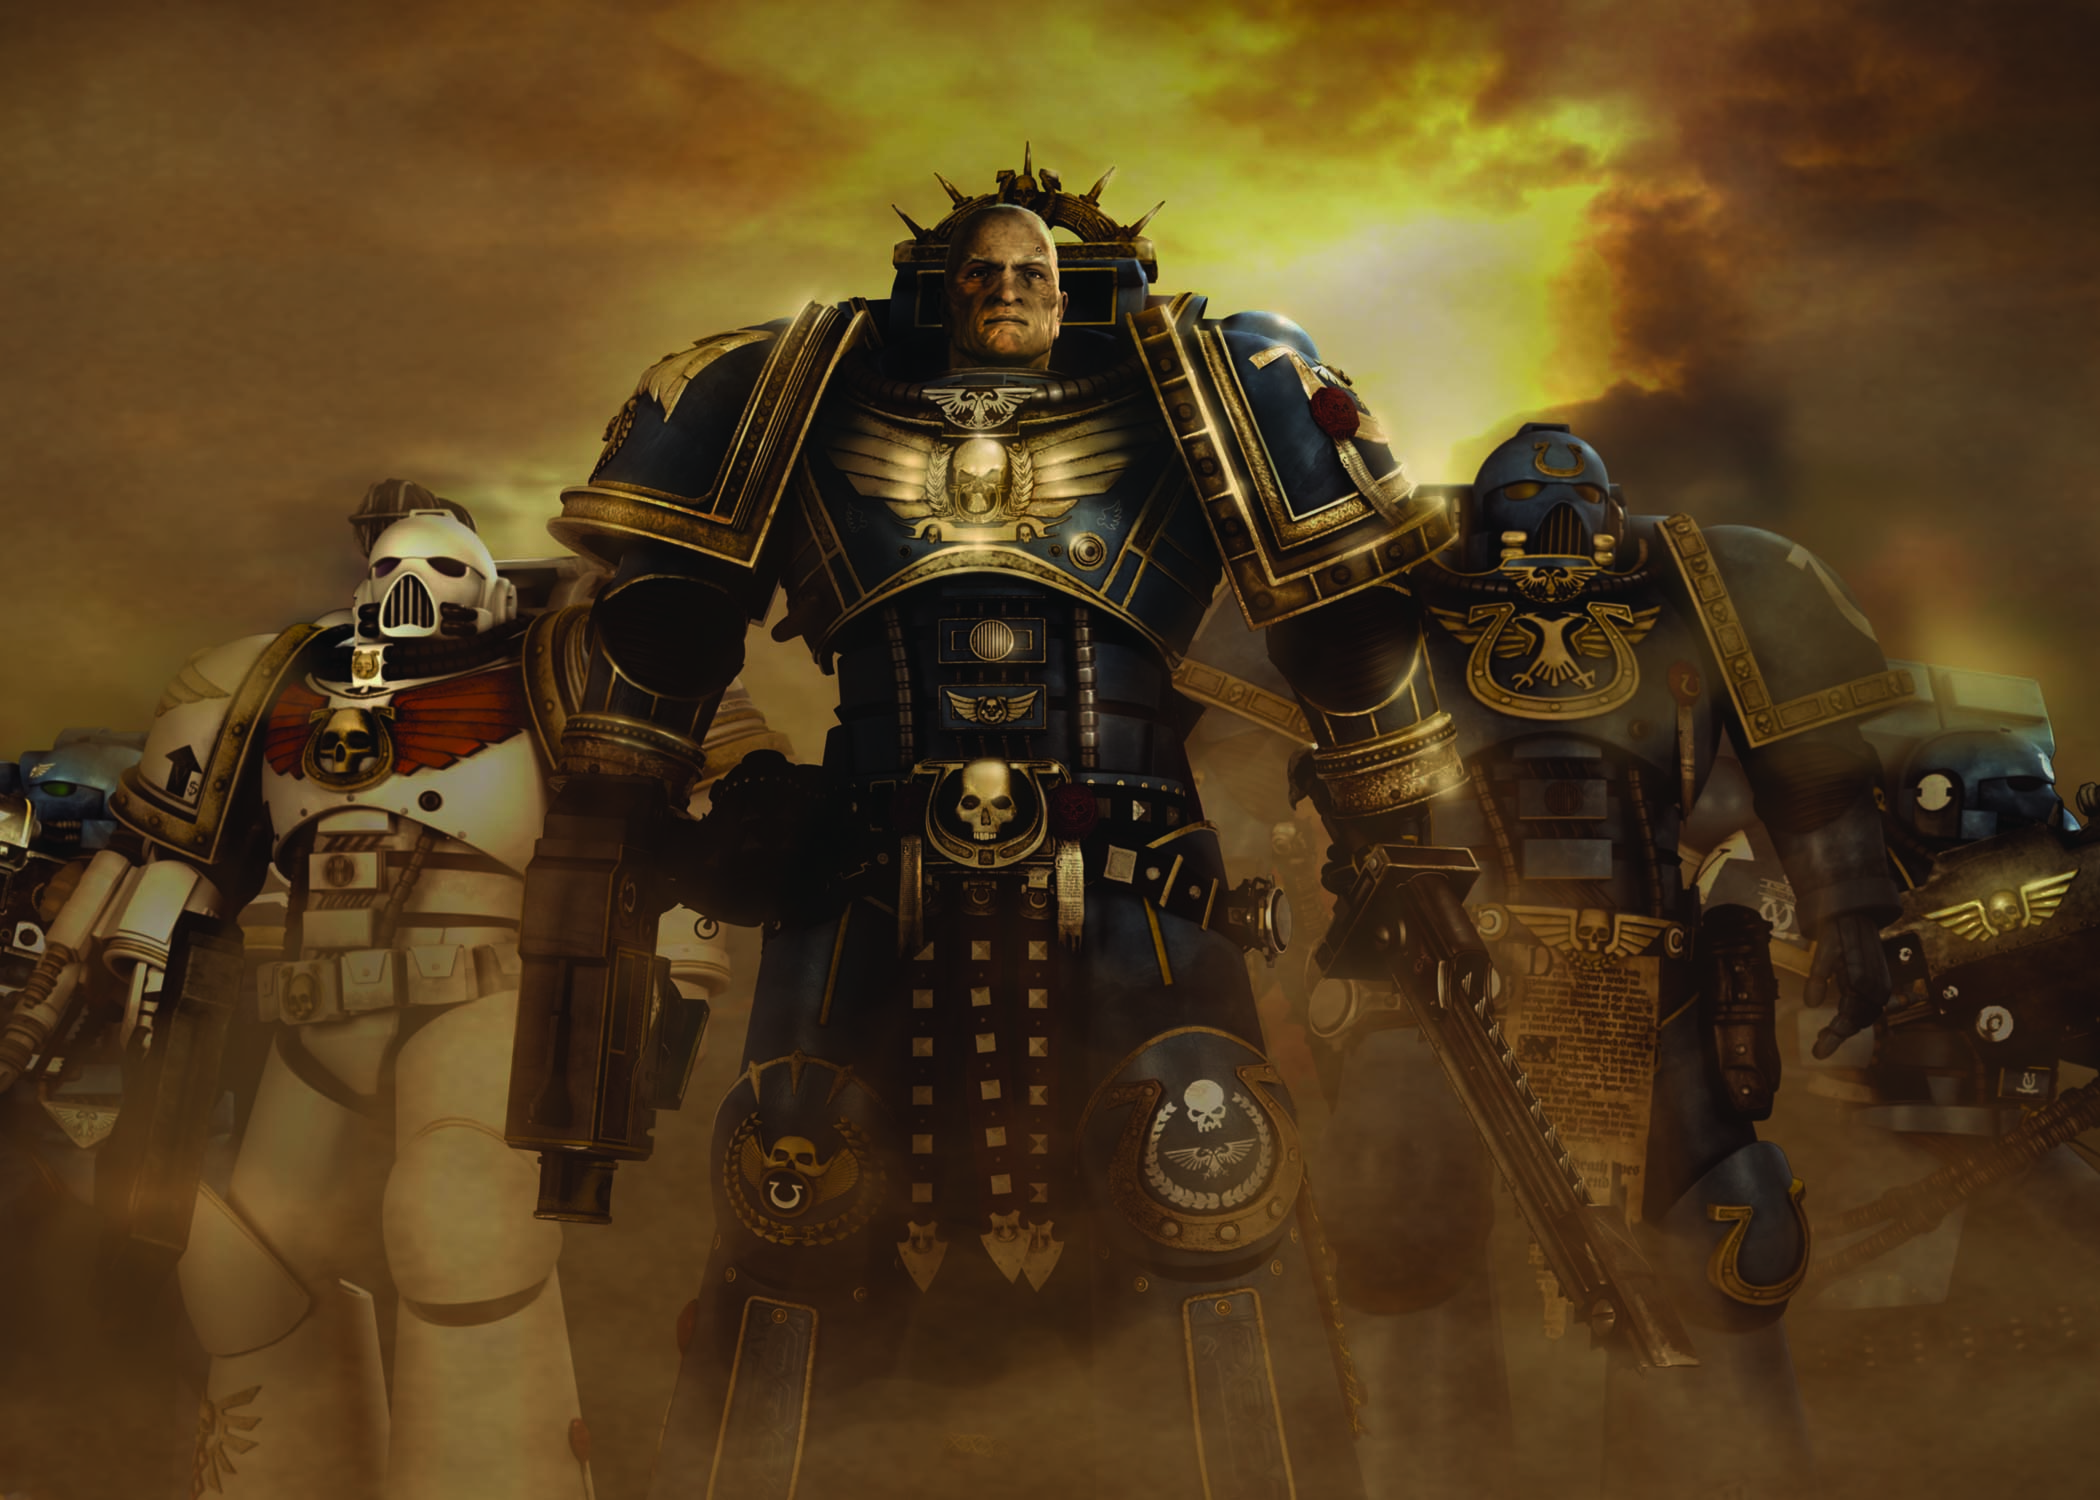 GROUP SHOT1 5 BY 800DPI Ultramarines: A Warhammer 40,000 Movie On Blu ray, DVD And Digital Download March 5